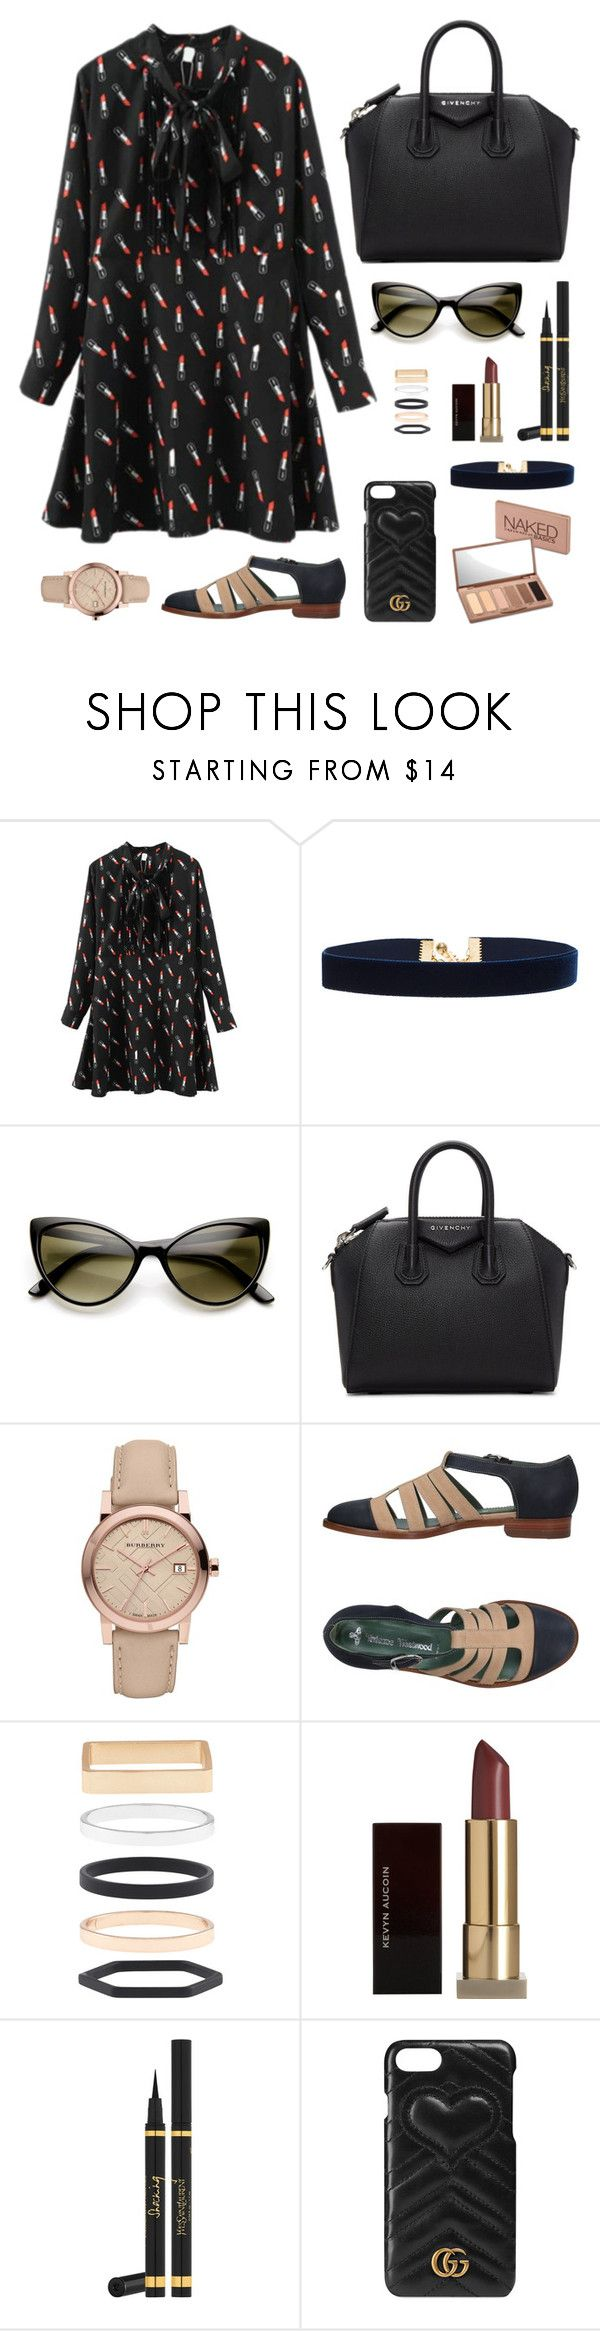 """Chata de Galocha - 12/10/2016"" by jessblock on Polyvore featuring Vanessa Mooney, ZeroUV, Givenchy, Burberry, Vivienne Westwood, Accessorize, Kevyn Aucoin, Yves Saint Laurent, Gucci and Urban Decay"